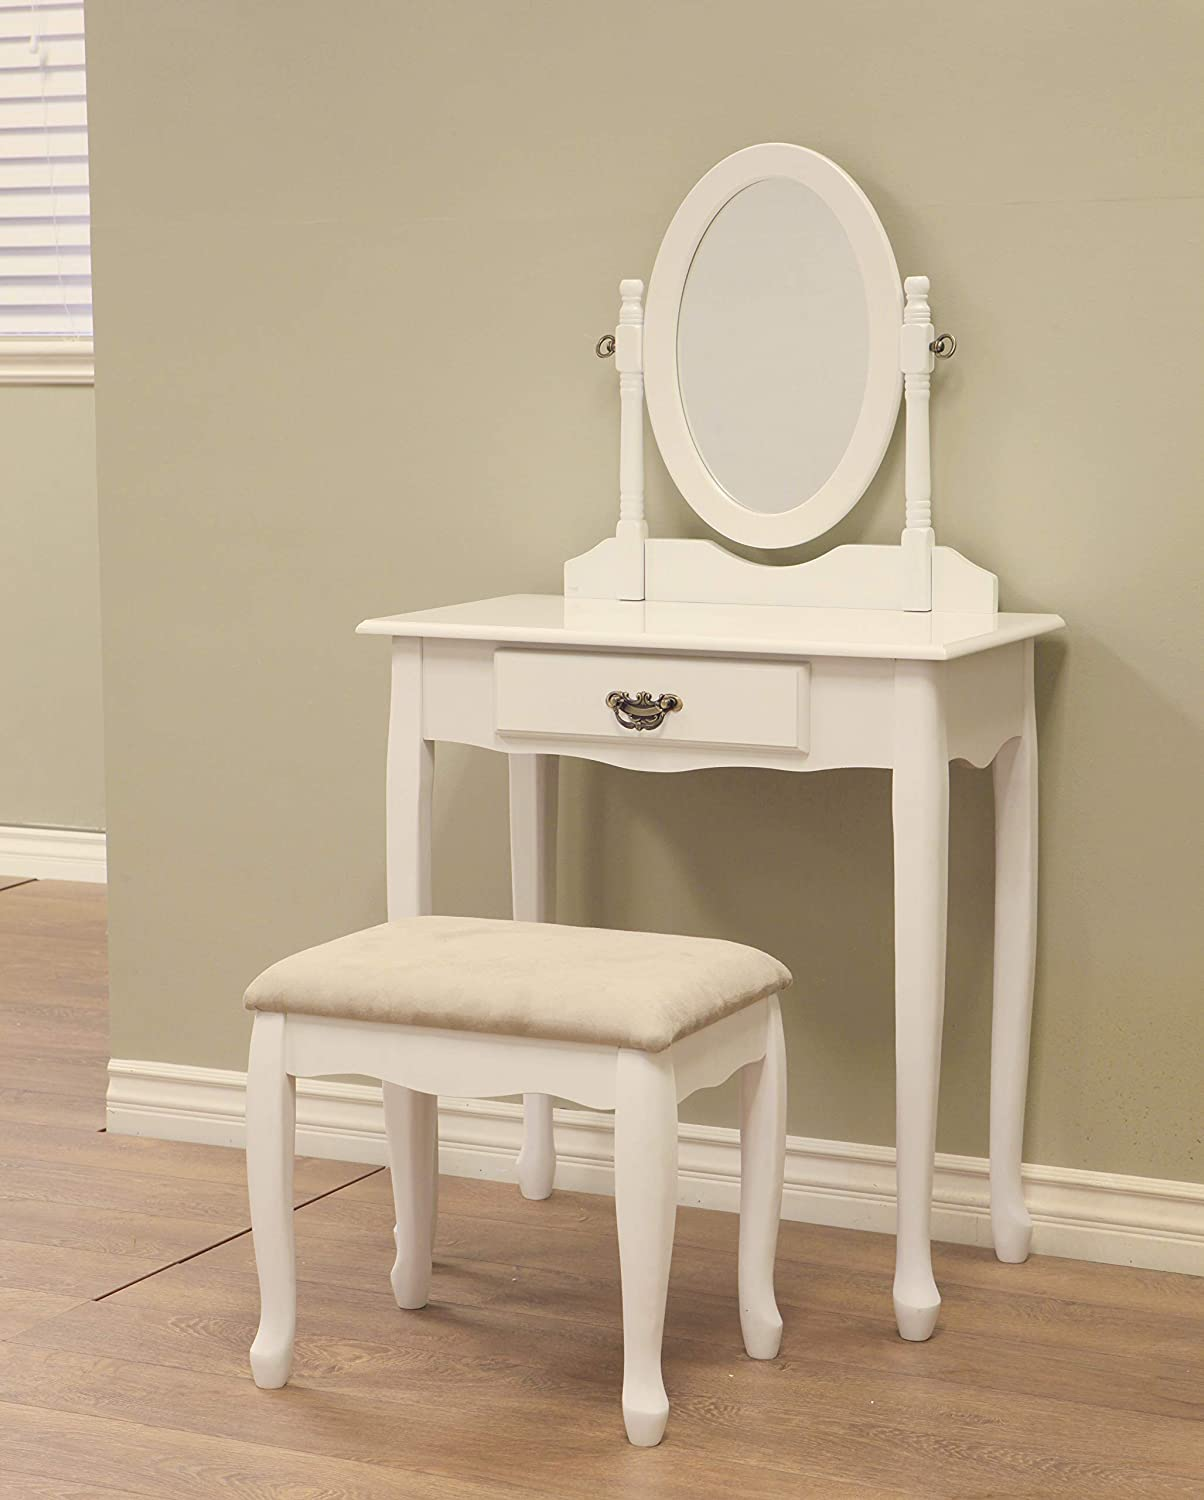 Frenchi Home Furnishing Vanity Set